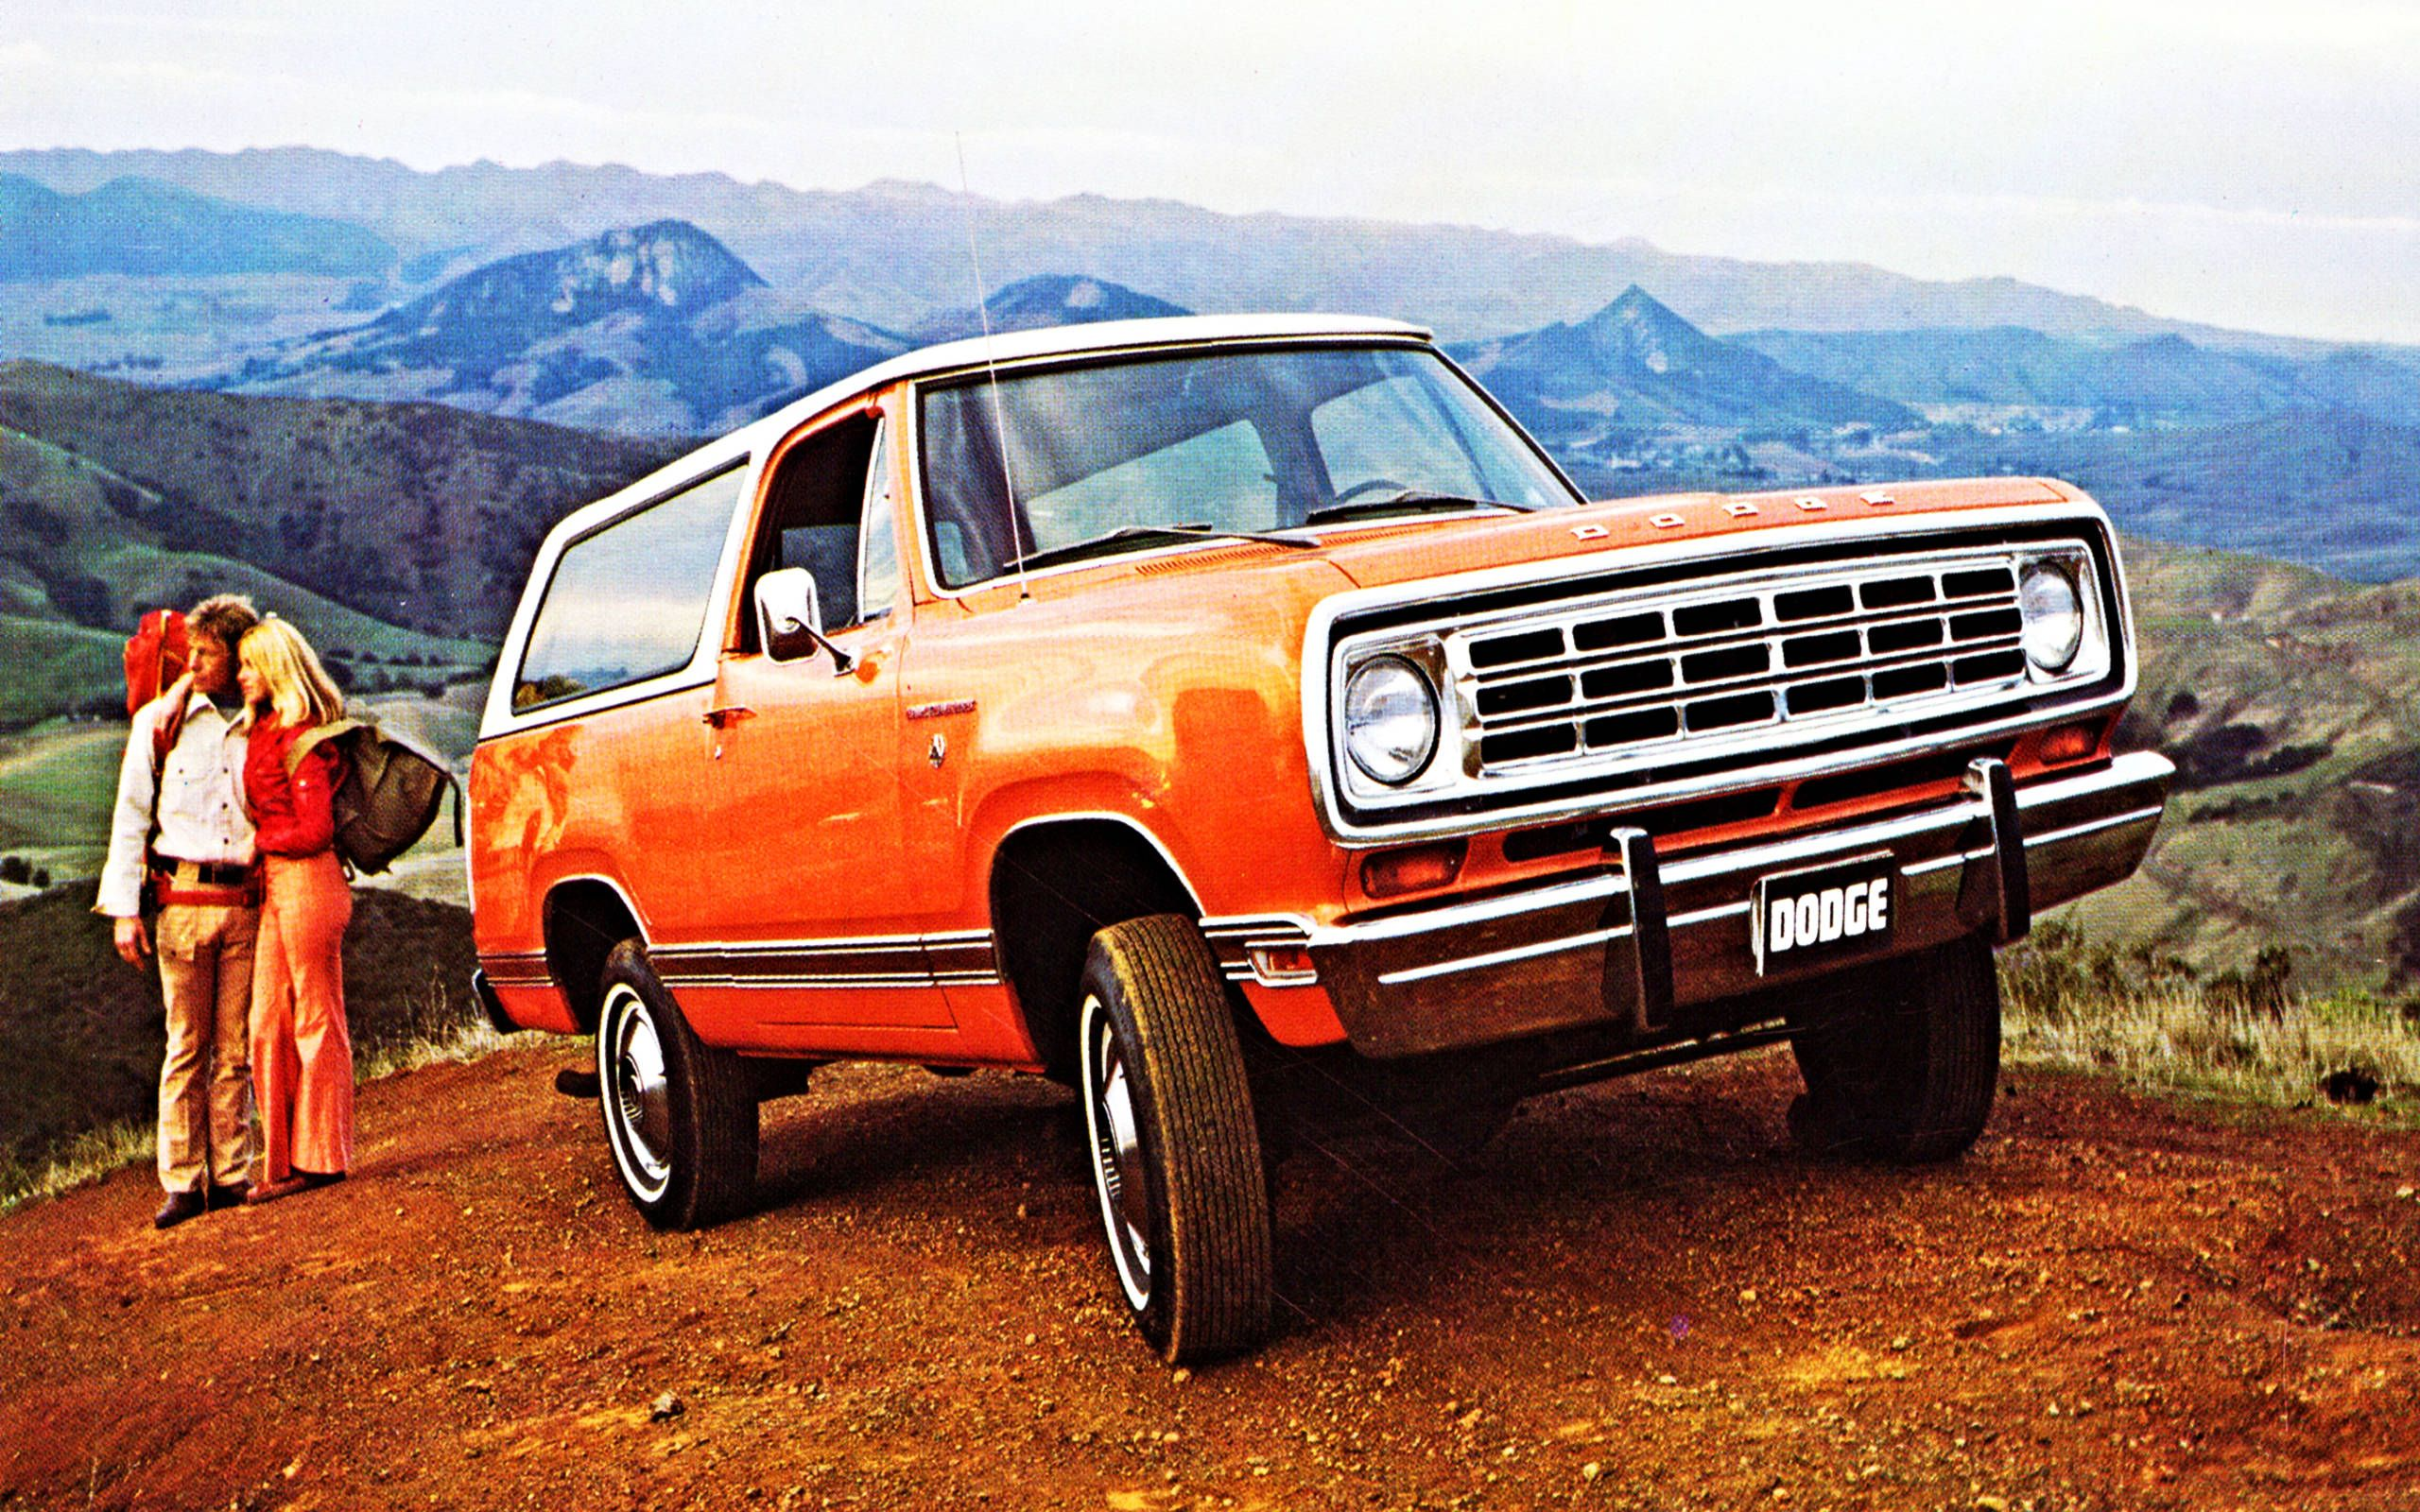 5 Suvs We Want Back Now That Cafe Mpg Goals Are Out The Window